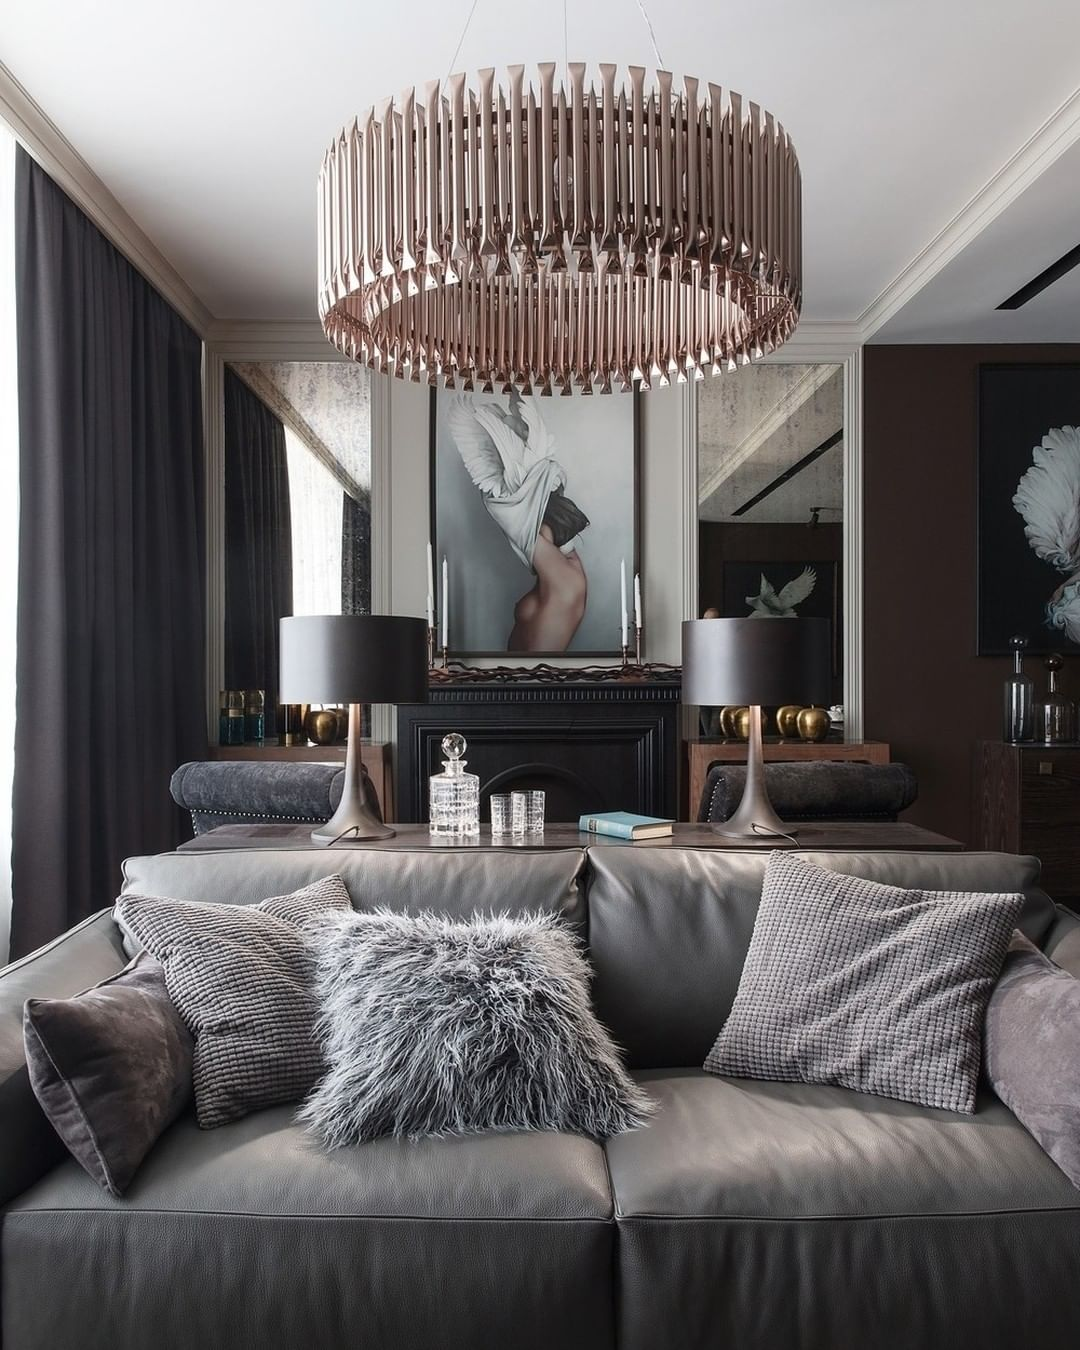 Be inspired by these Gorgeous Ambiances